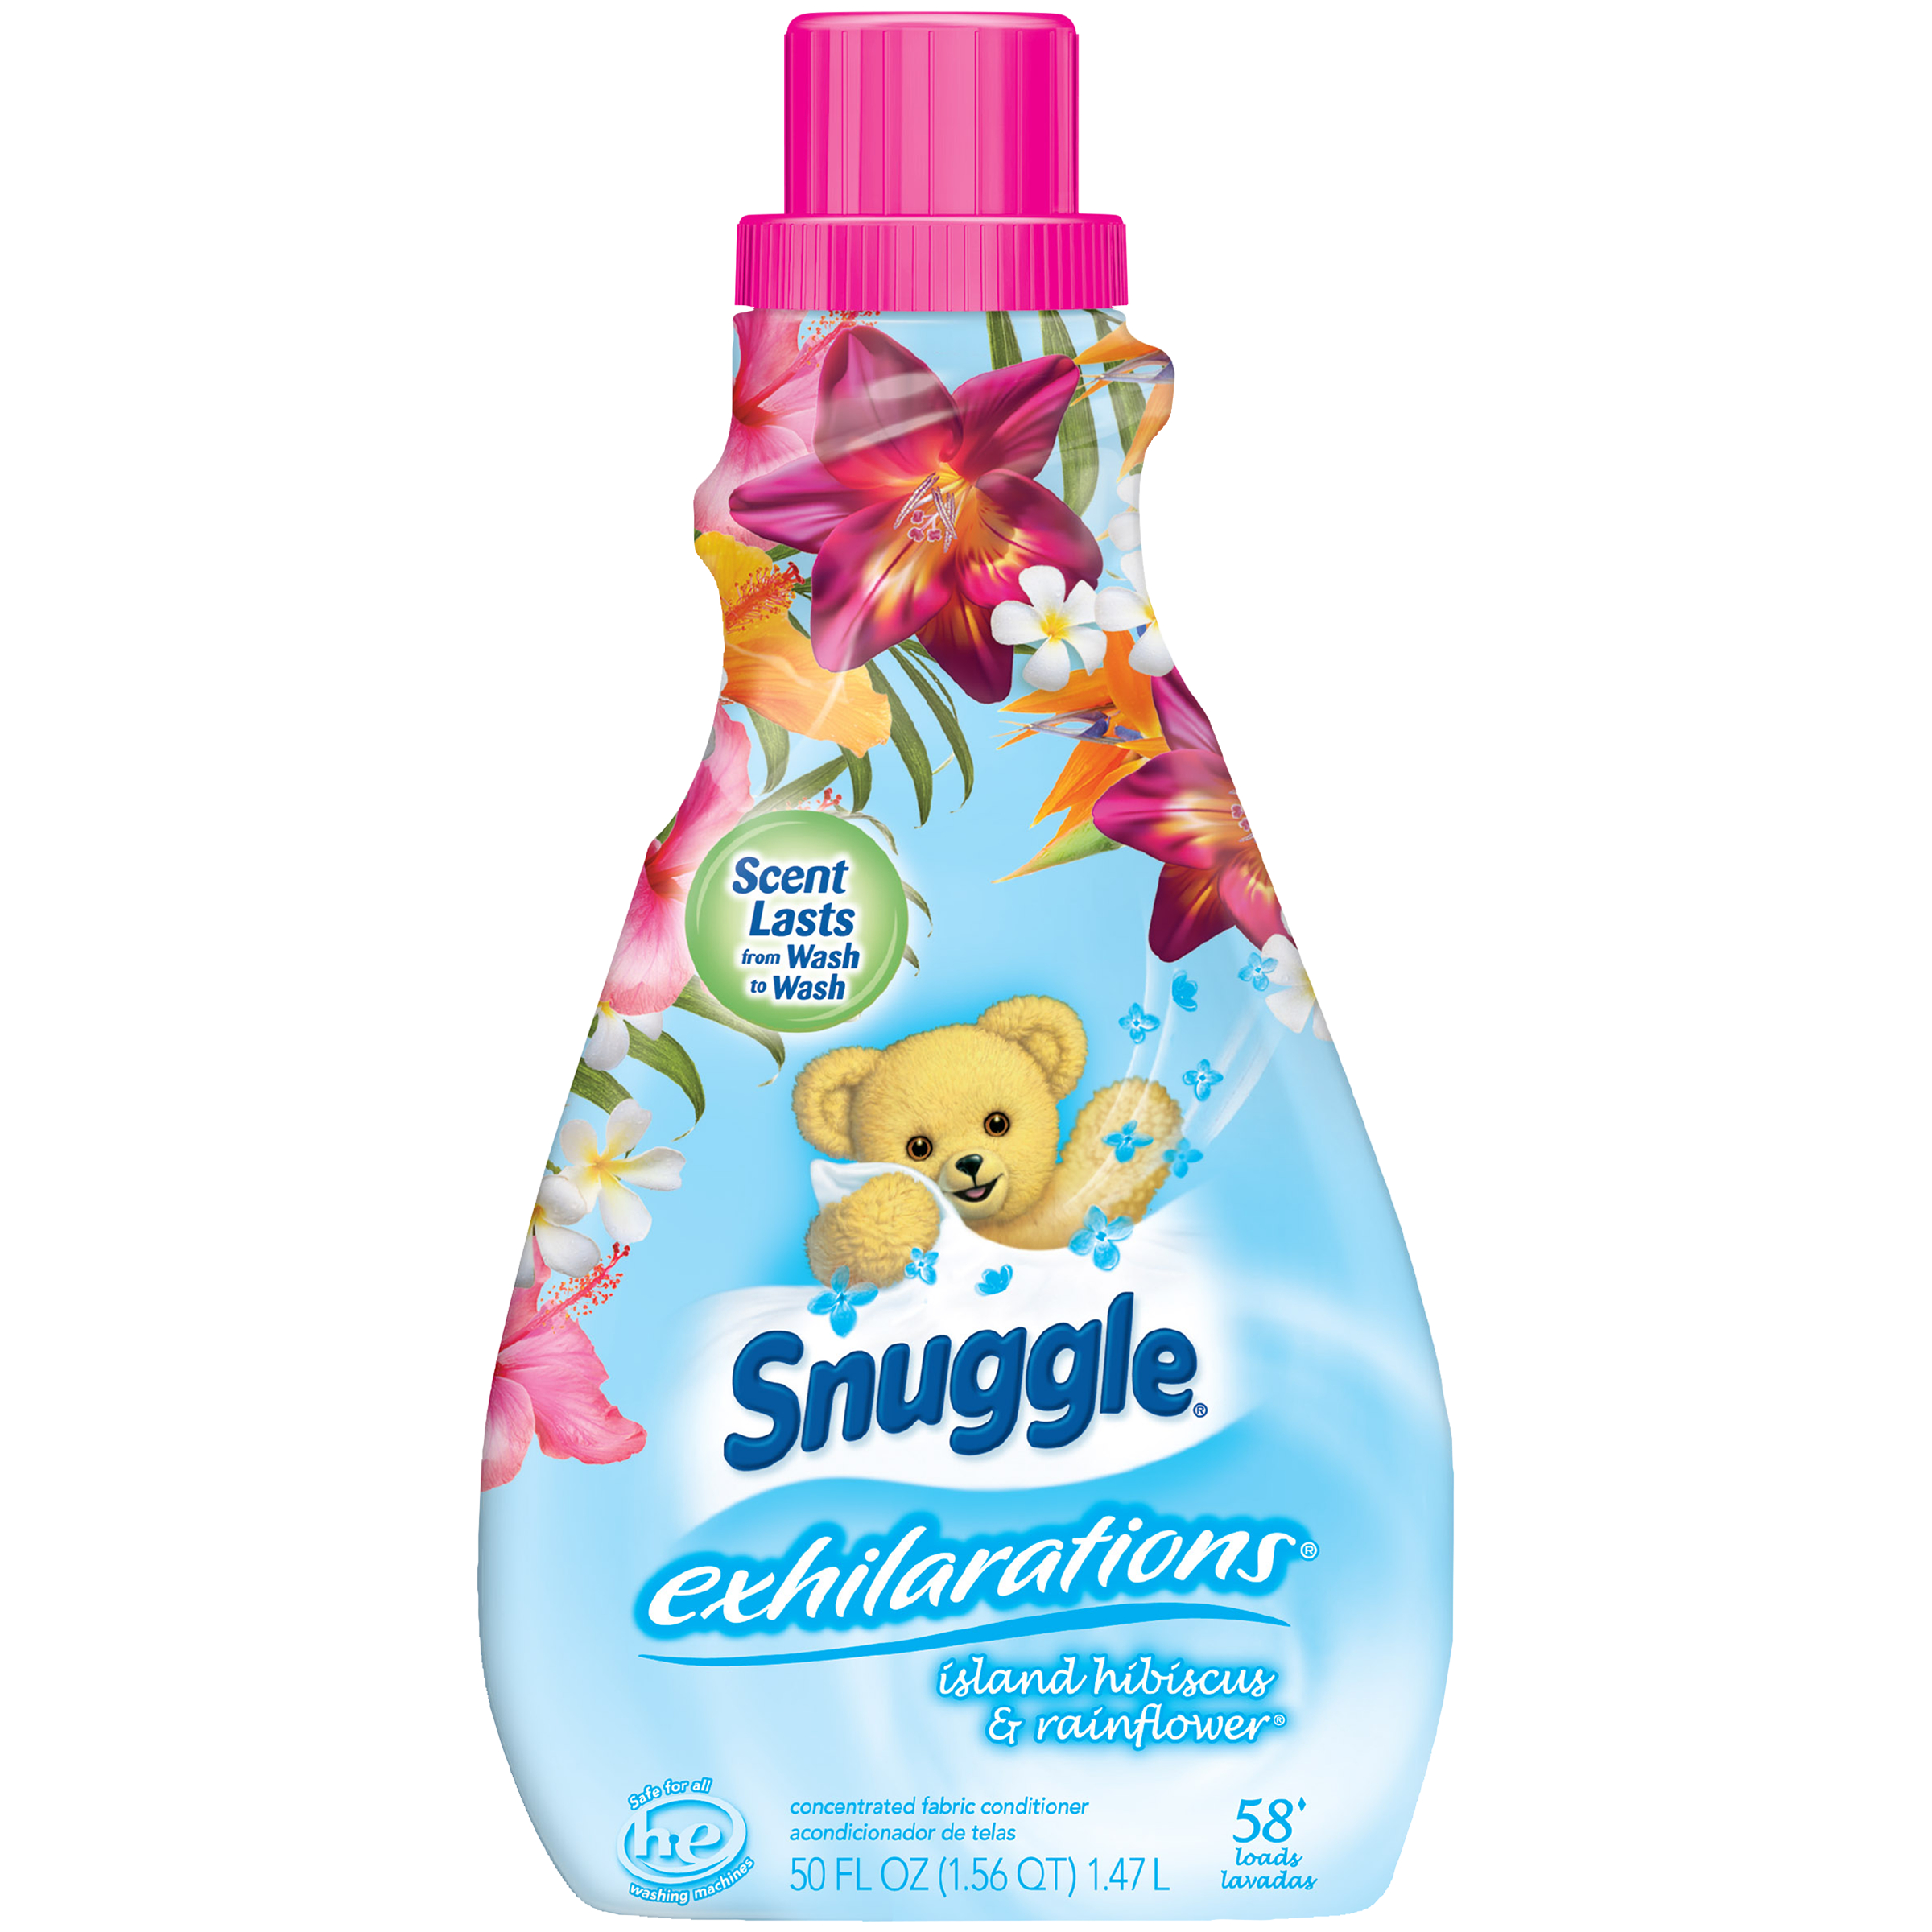 Snuggle Exhilarations Liquid Fabric Softener, Island Hibiscus & Rainflower, 50 Ounce, 58 Loads